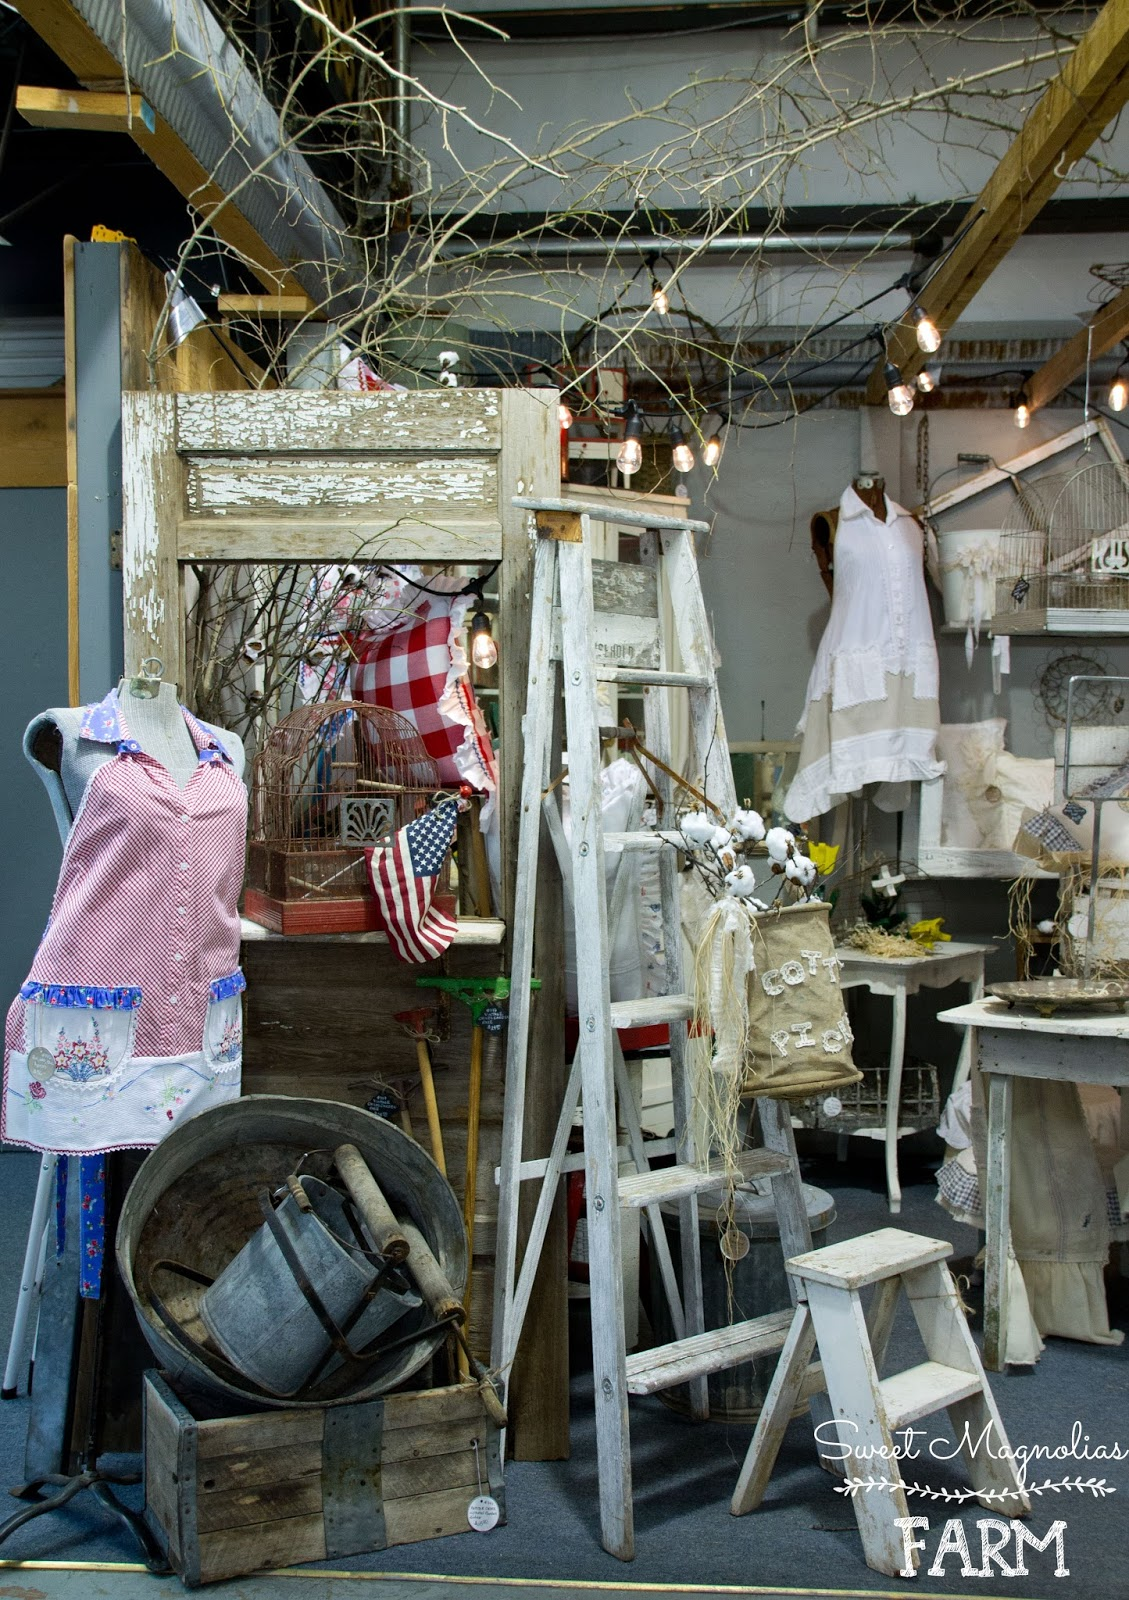 Sweet Magnolias Farm Our New Shop Space Now Open In Ozark Mo At Wiring Old Farmhouse And For Those Locals That Happen On Blog Well Come Down See Us Camp Flea Antique Mall Vintage Marketplace